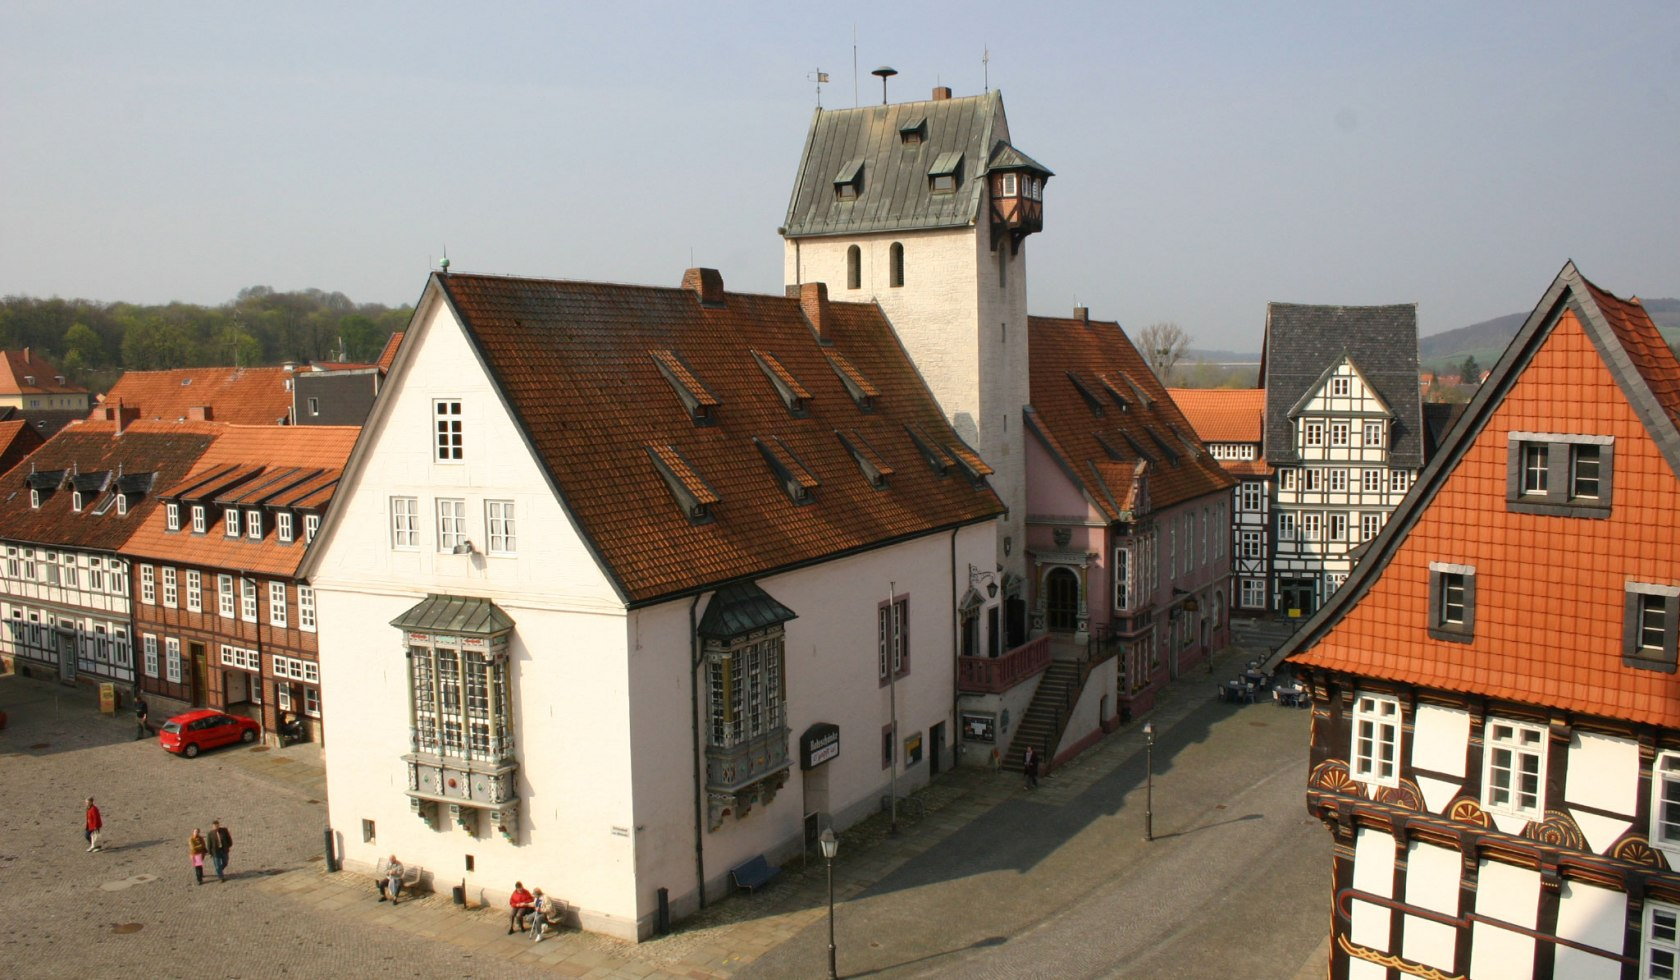 Town hall and market place